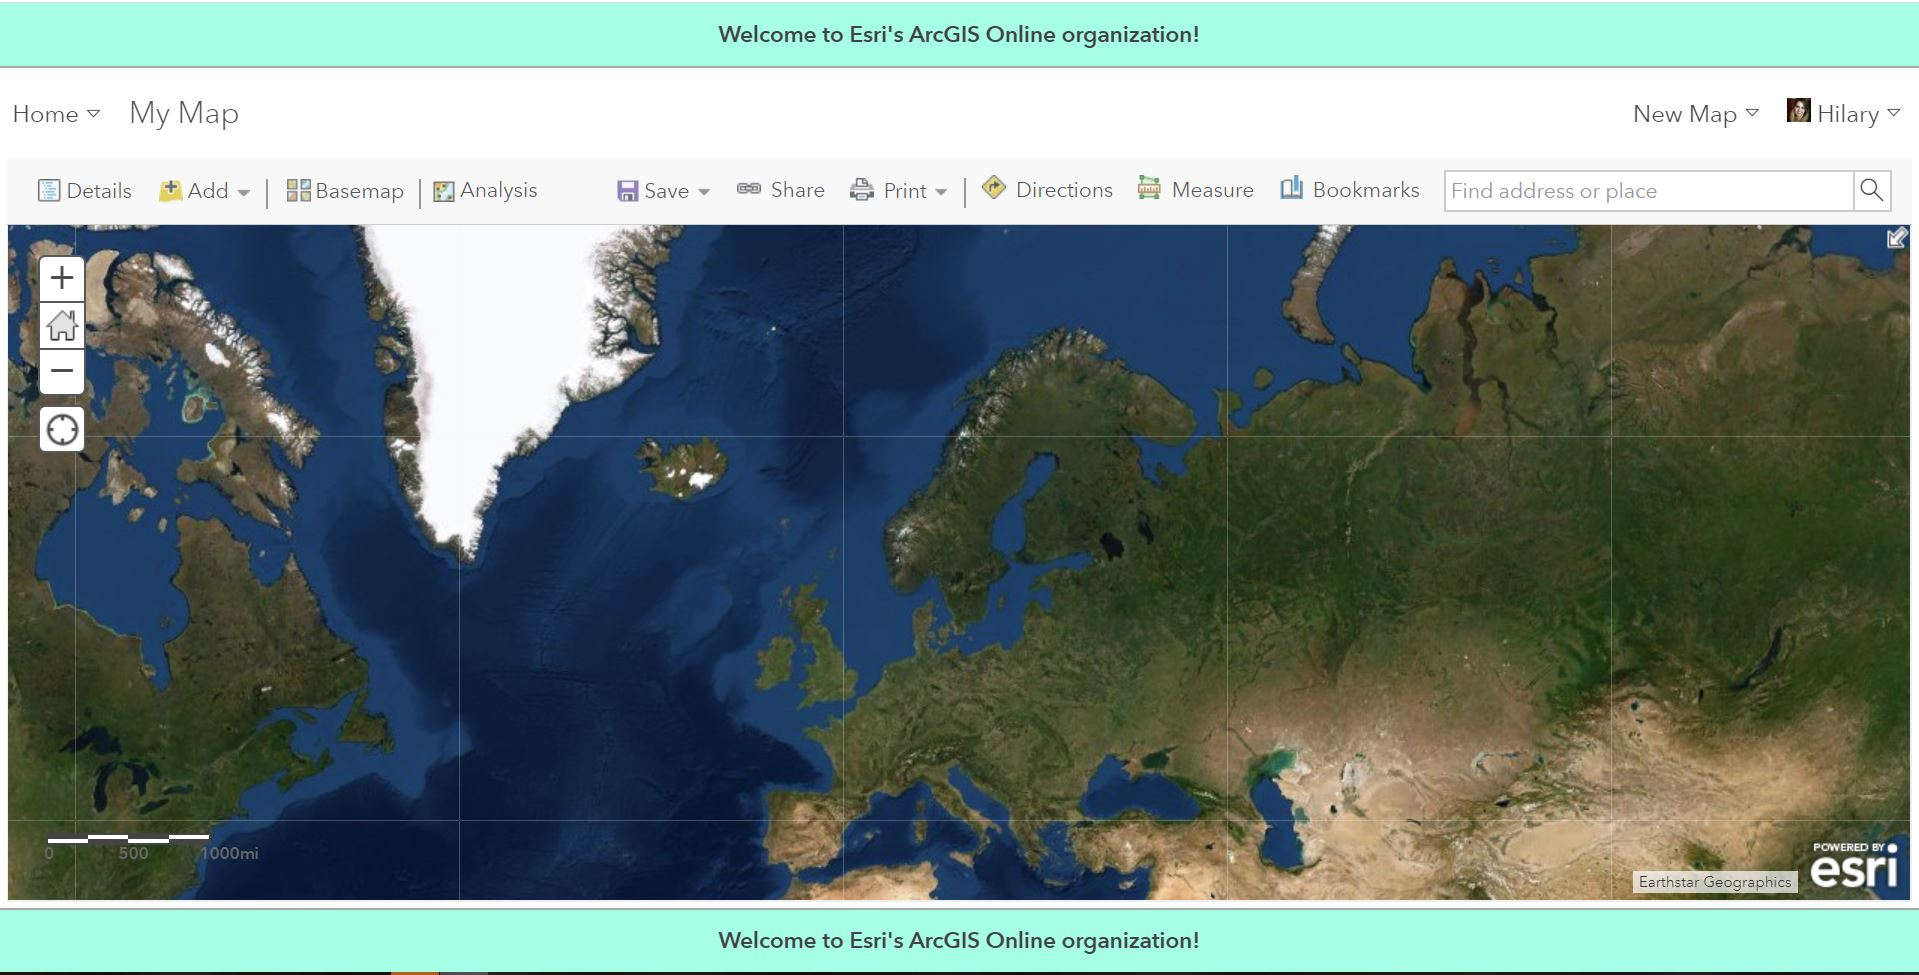 An example of the information banner at the top and bottom of the map tab in ArcGIS Online.